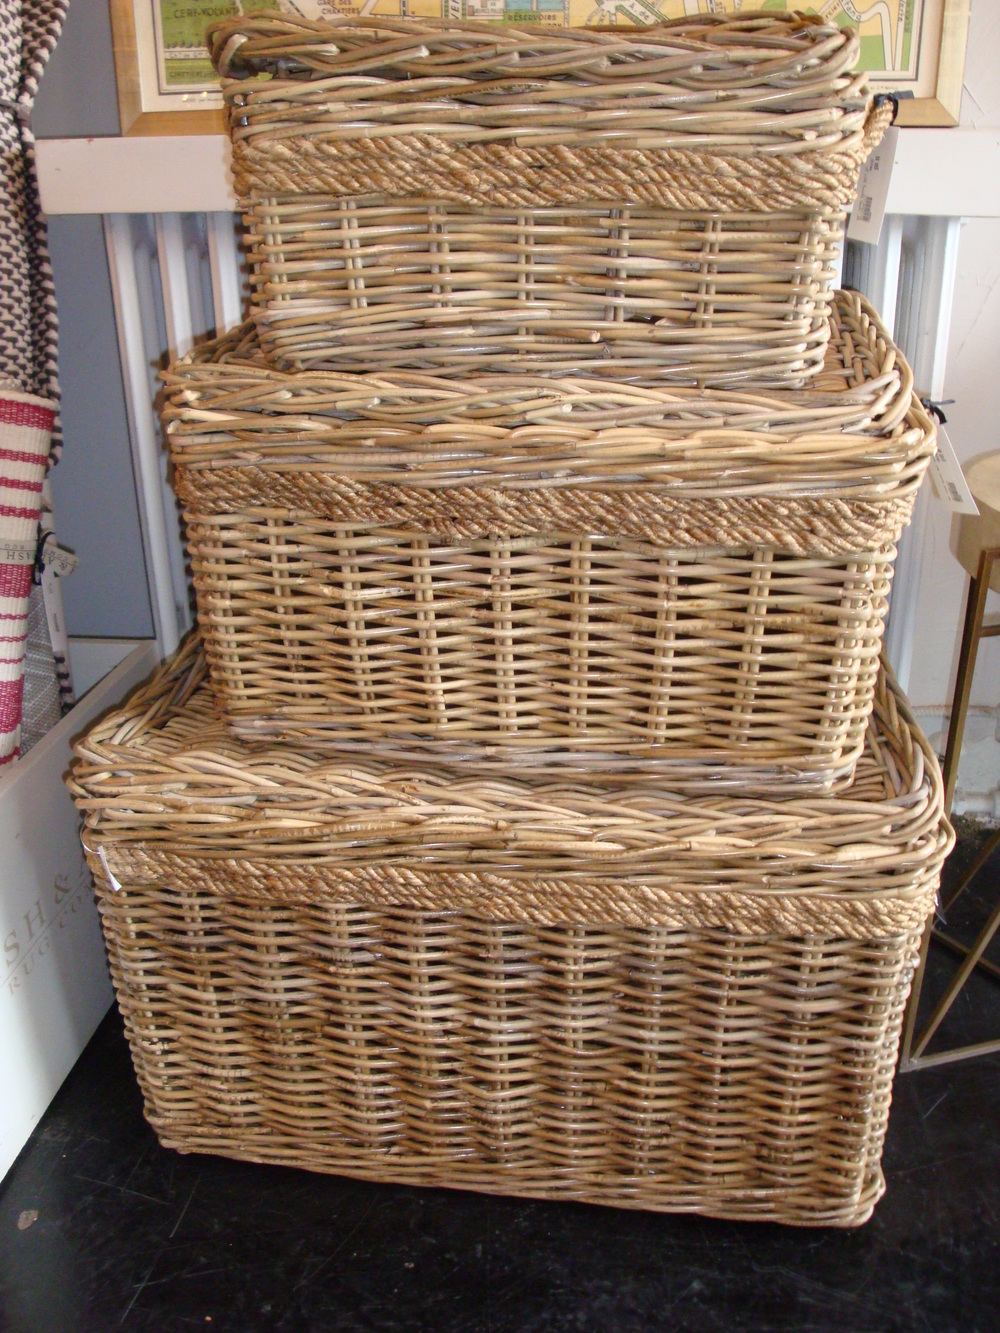 Wicker Art Shore Baskets